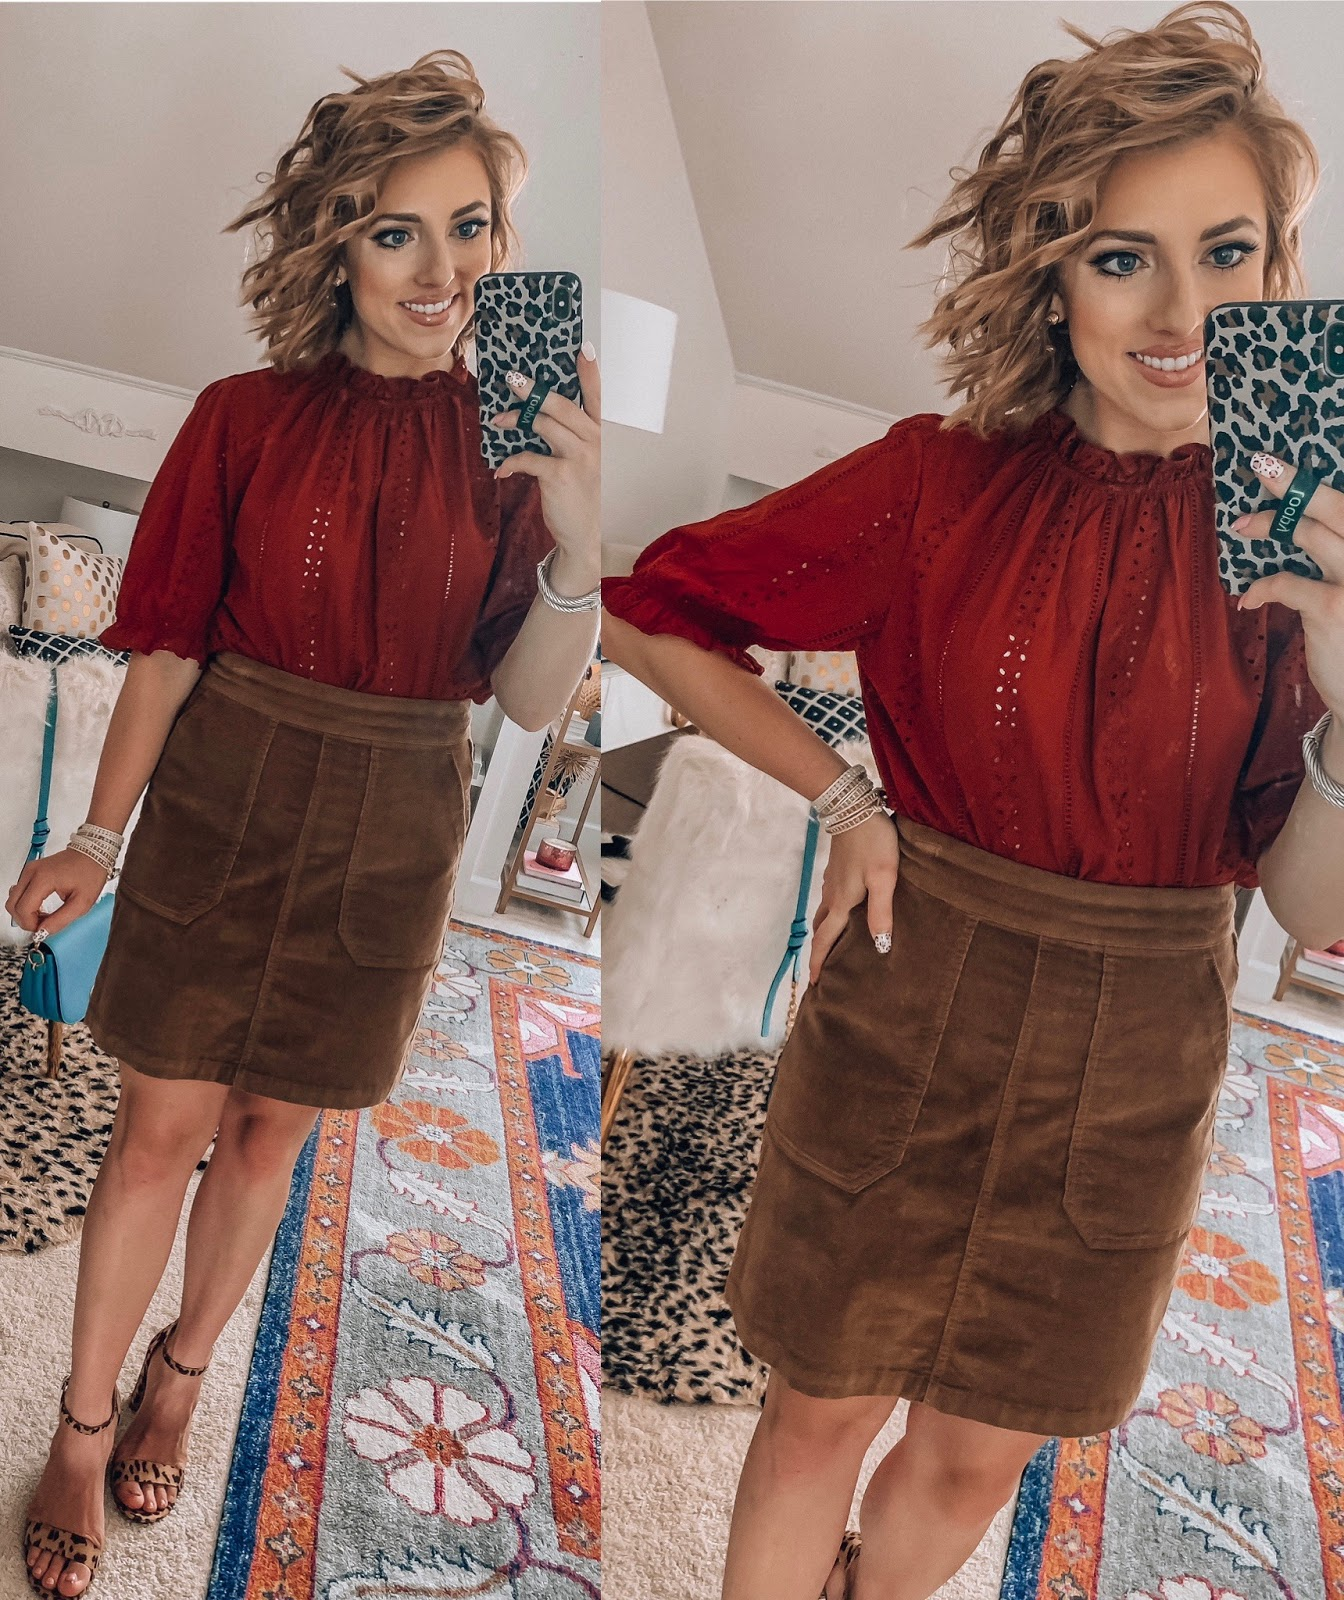 Target Fall Finds: Part 2 - Under $30 Eyelet Bishop Top with cord skirt - Something Delightful Blog #fallfashion #leopard #pajamas #targetstyle #targetfallfinds